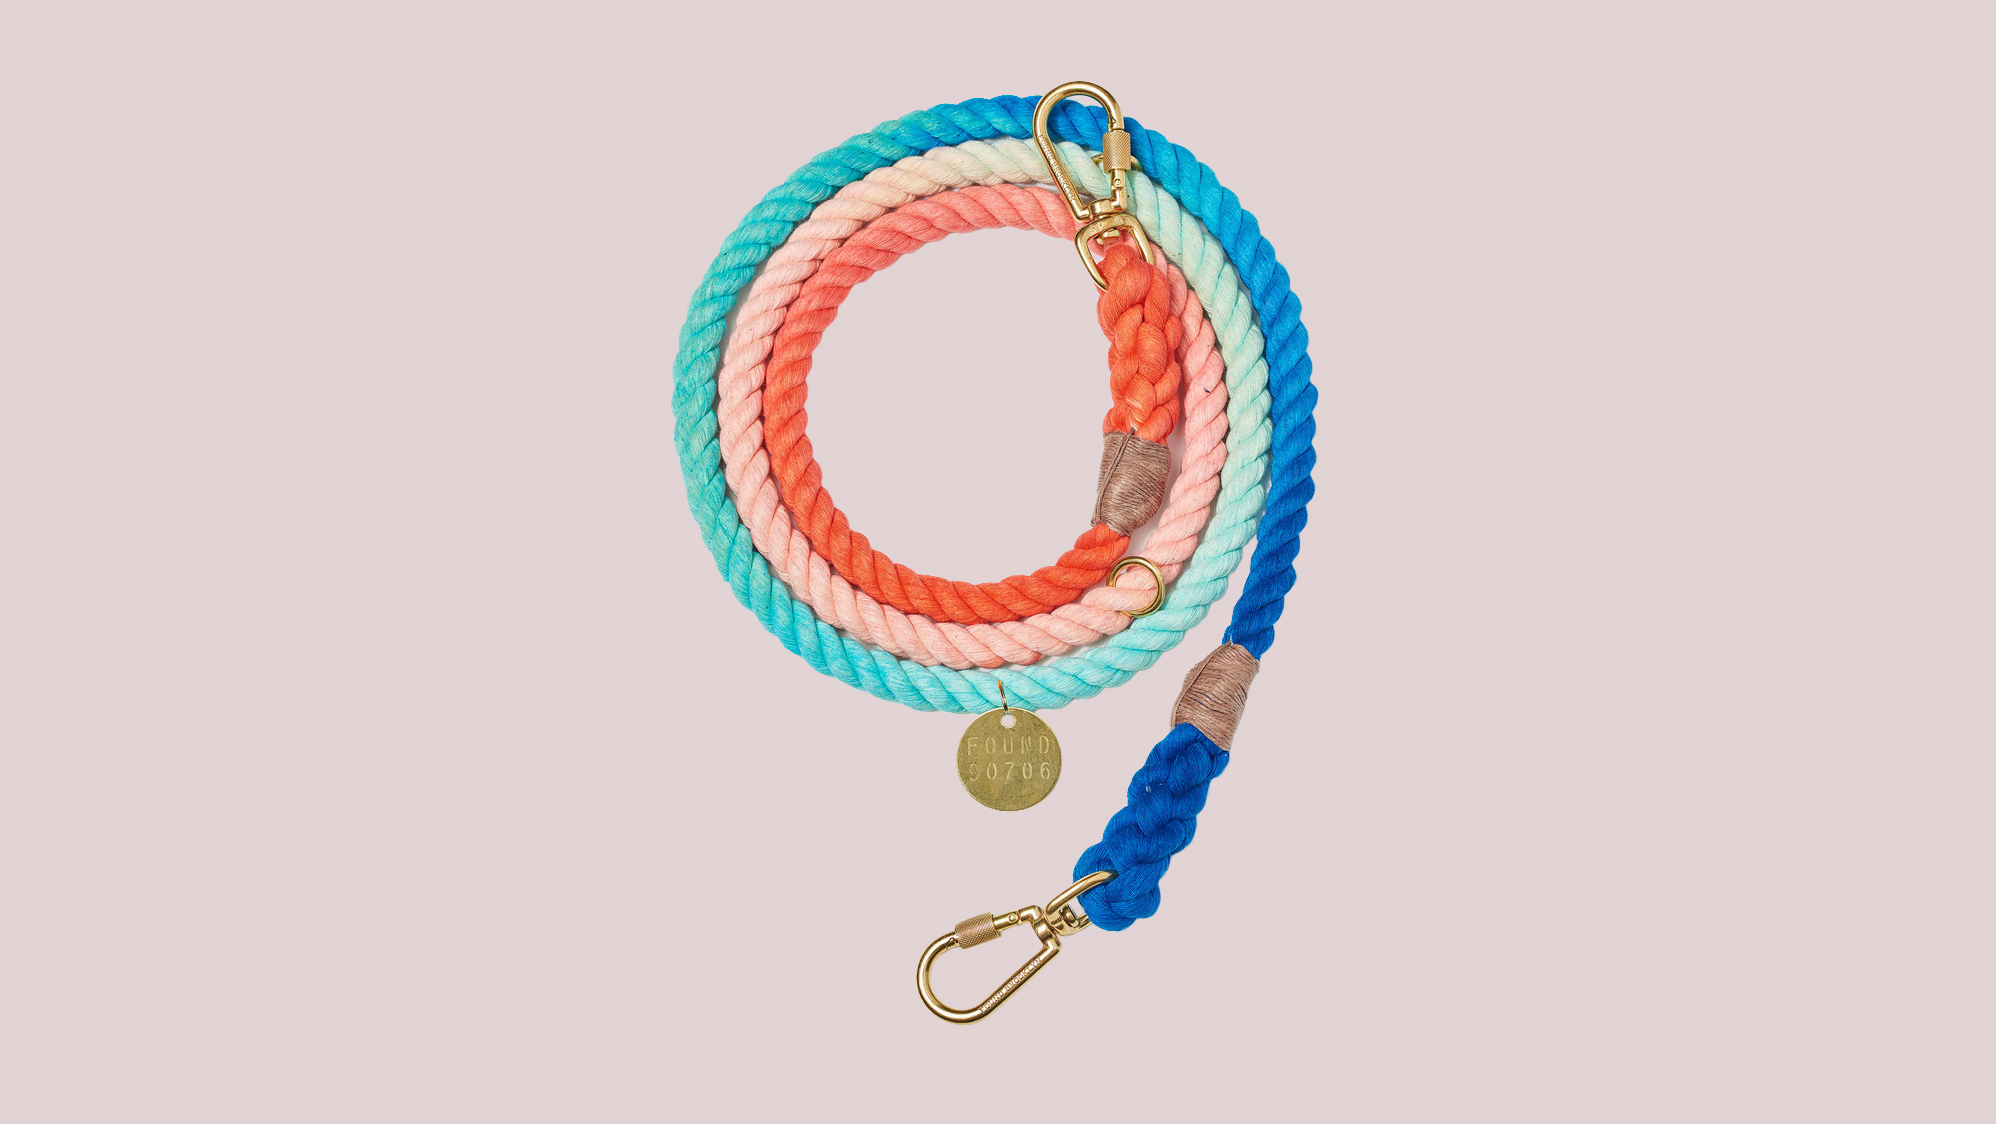 Sweetpea Cotton Ombre Rope Dog Leash